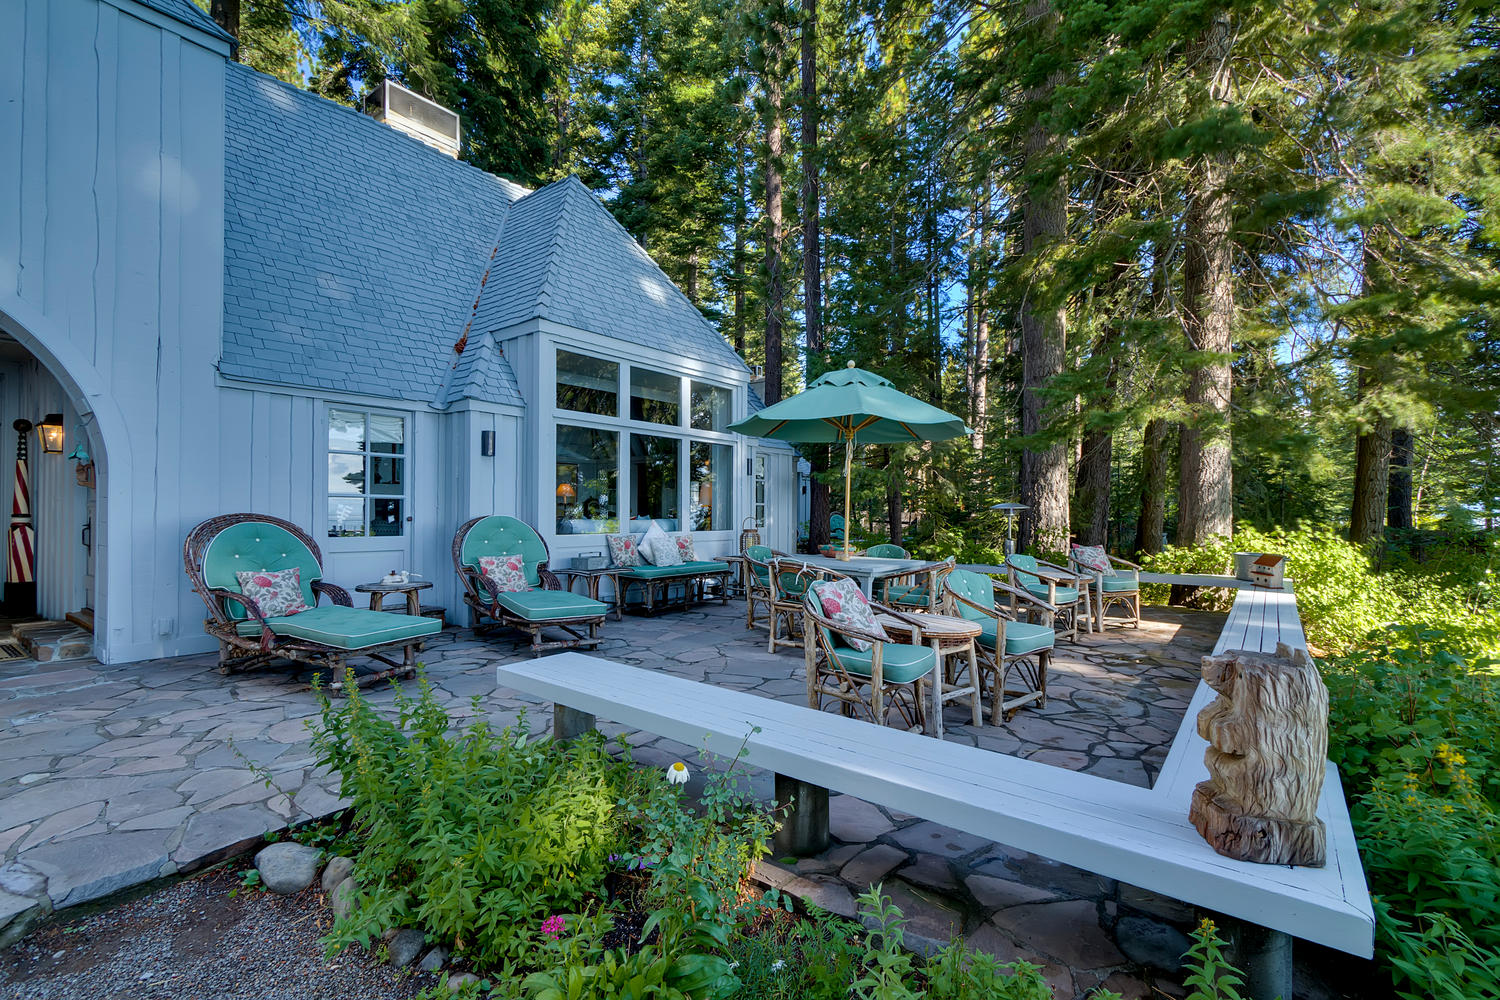 Tahoe For Sale >> The Carousel Estate is Now For Sale | Tahoe Luxury Properties